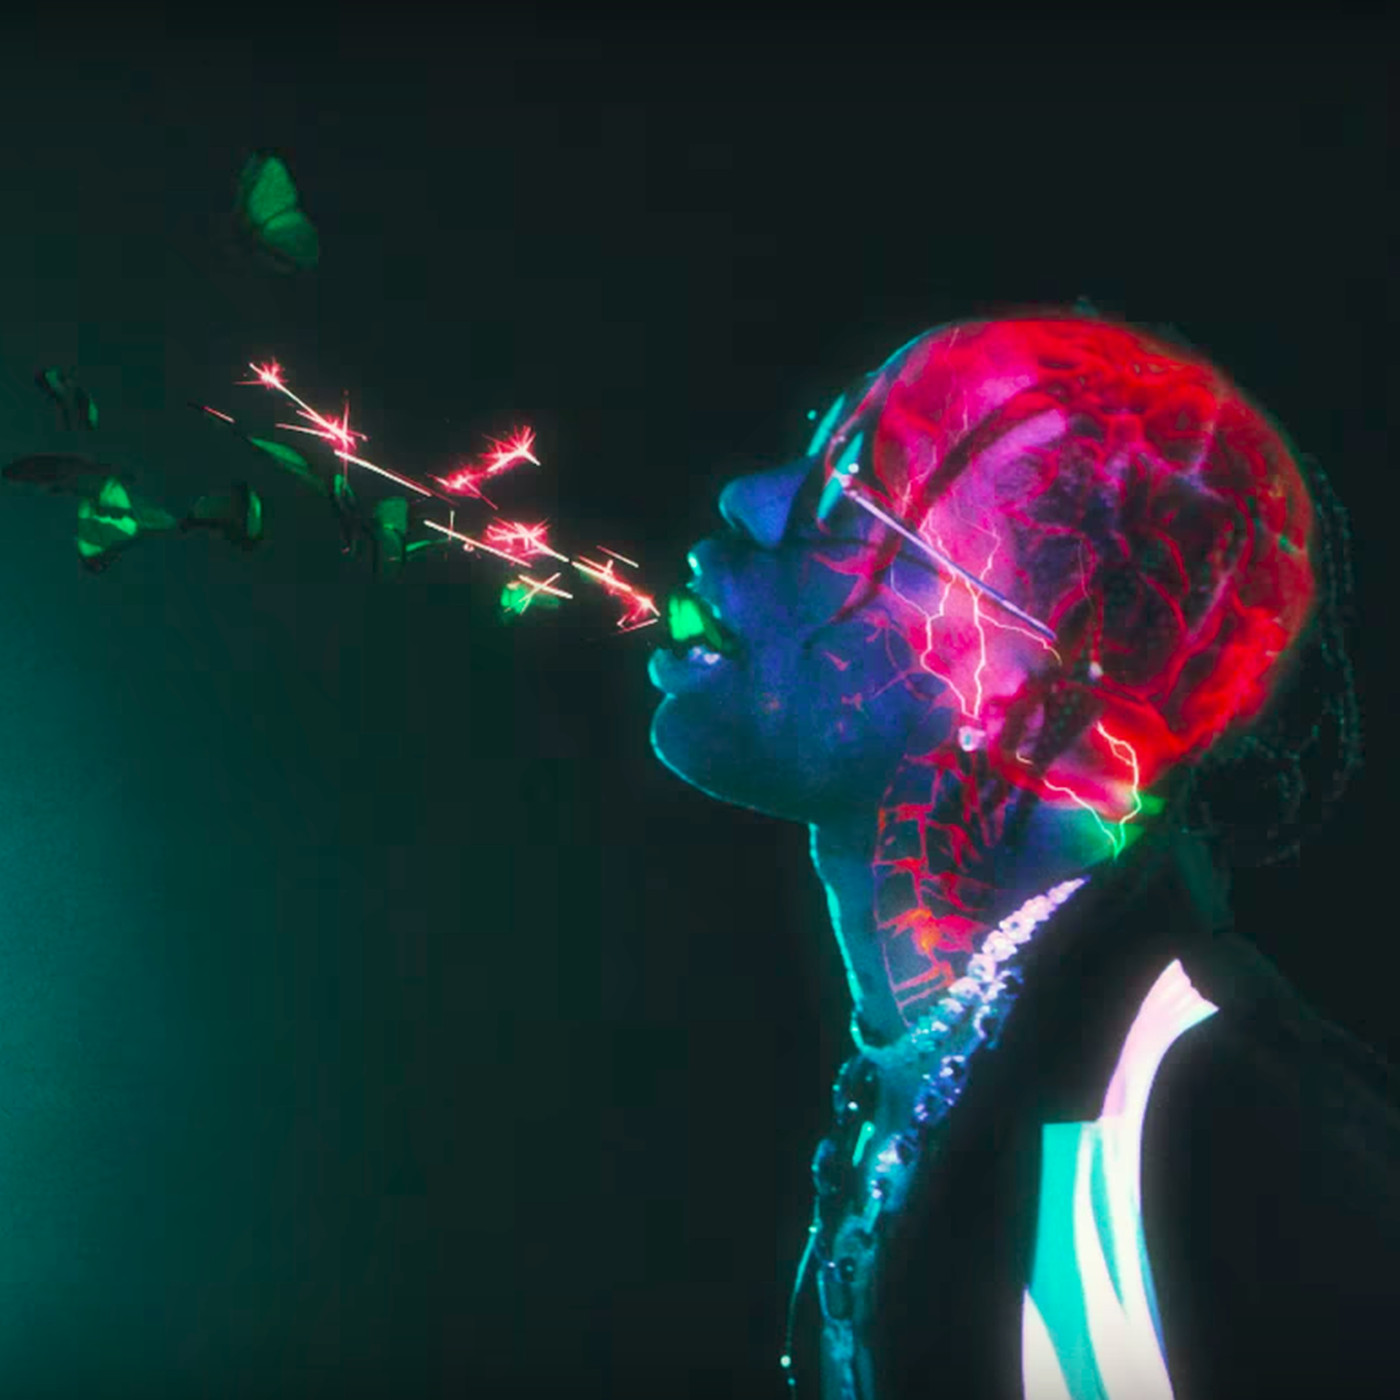 a4ad09794c4c One Video: Butterfly Effect by Travis Scott - The Verge